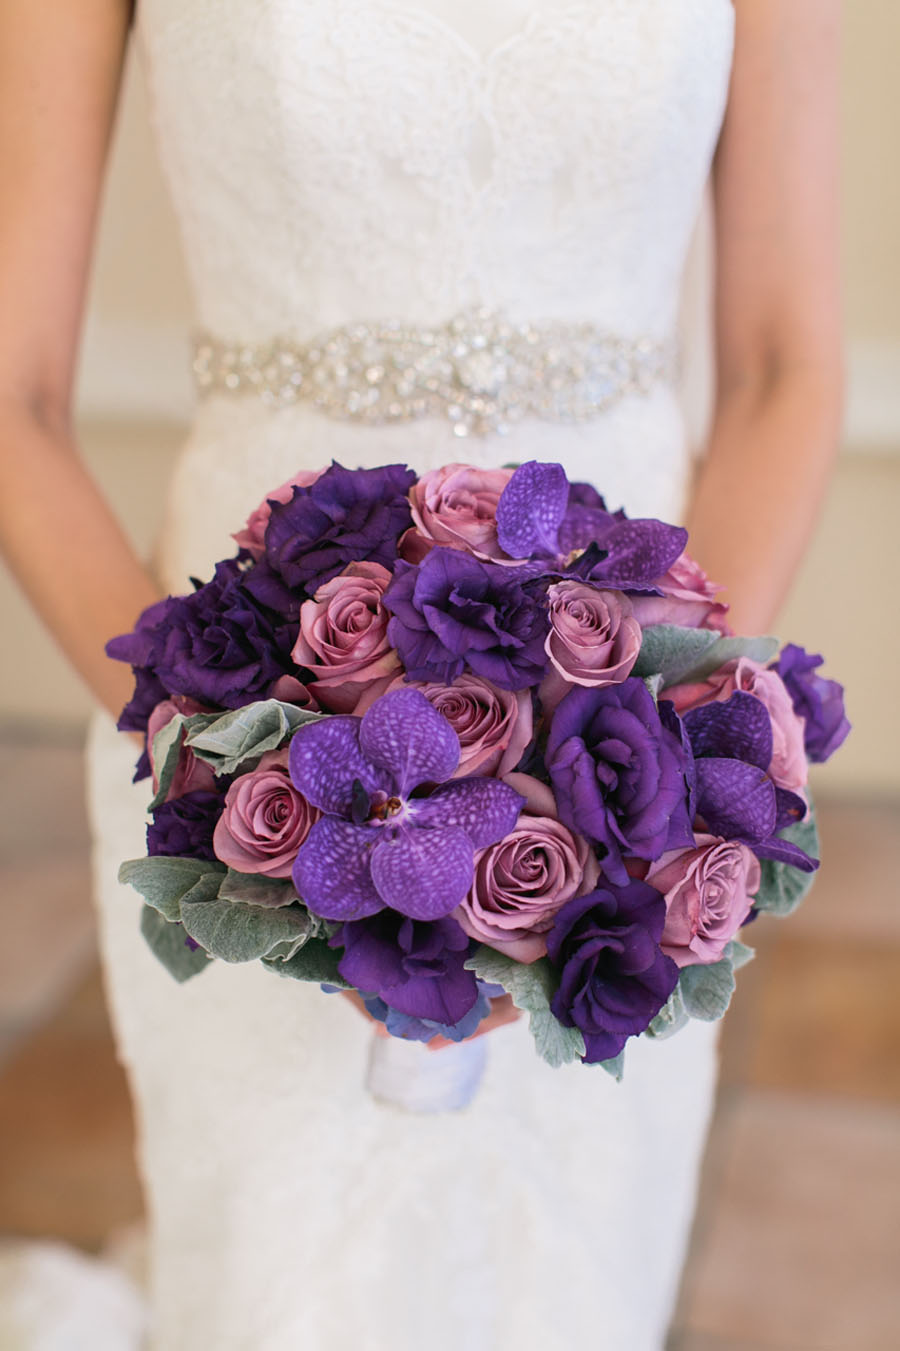 The Bridal Bouquet of Roses and Orchids. Las Vegas Wedding Planner Andrea Eppolito.  Wedding at Four Seasons.  Photography by Meg Ruth.  Floral and Decor by Naakiti Floral.